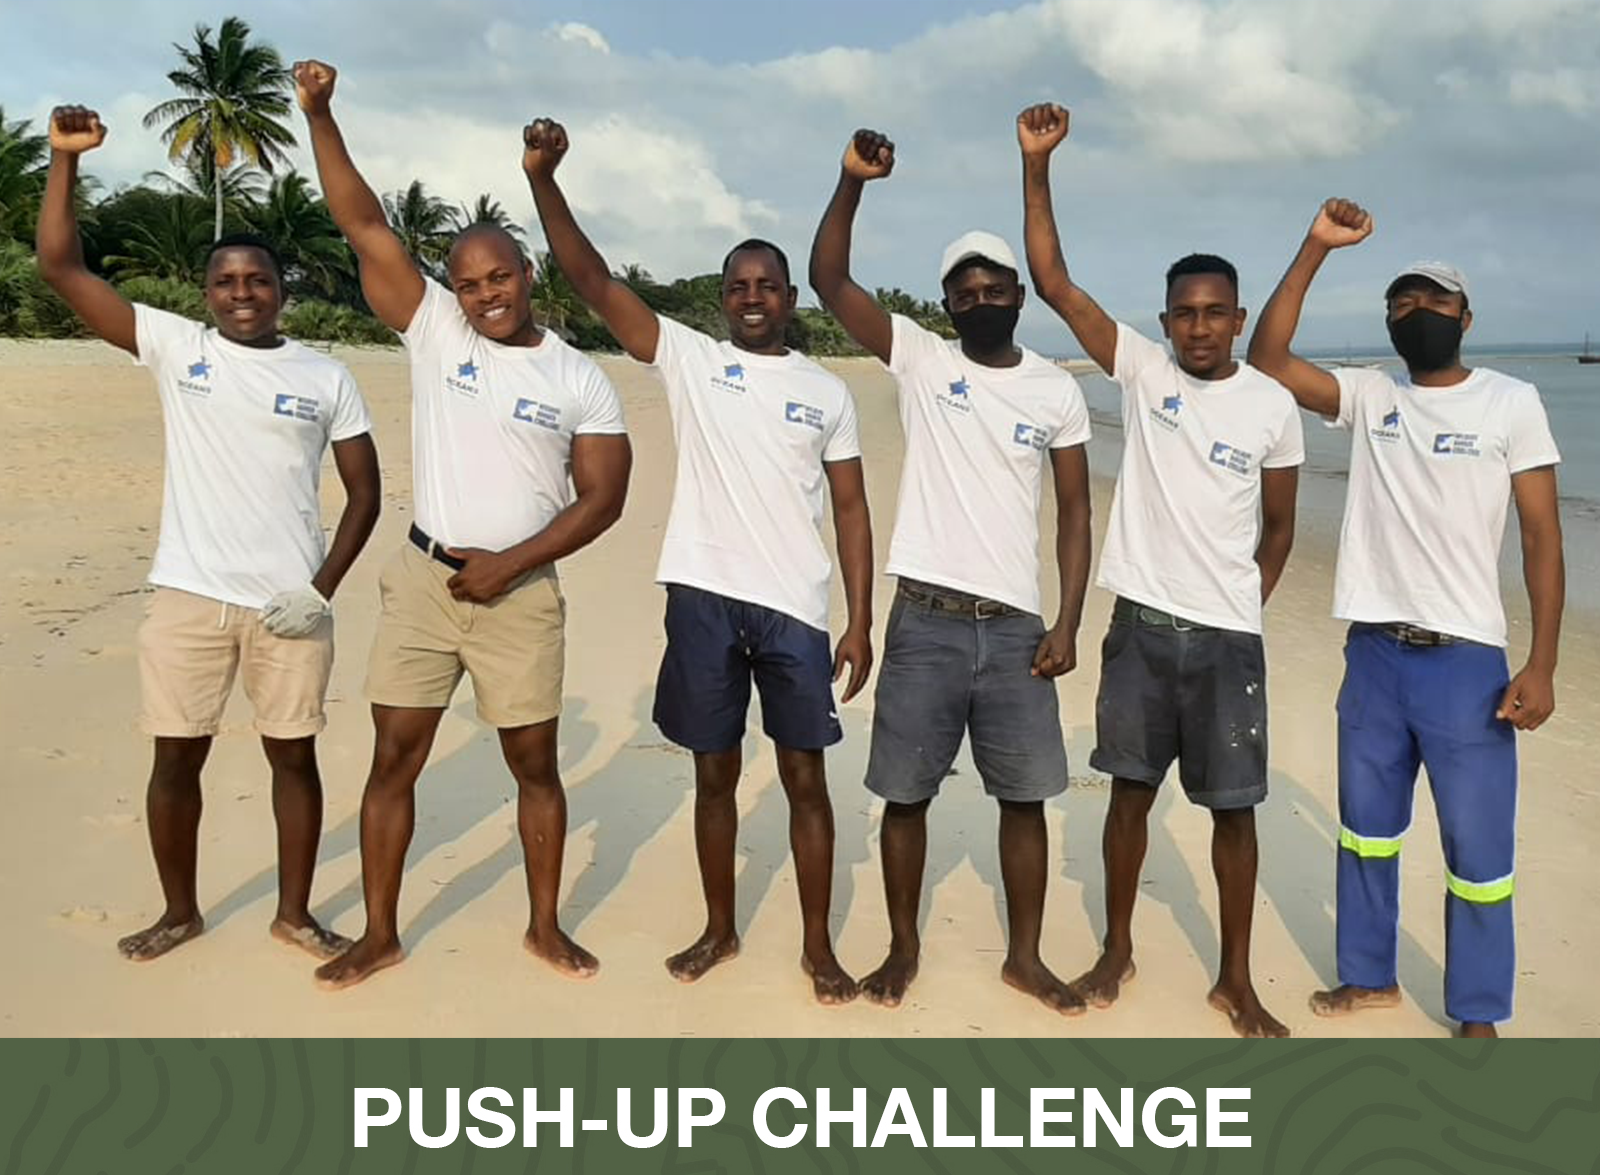 Push-Up Challenge Winners - Oceans Without Borders Marine Rangers - Benguerra Dugong Team Mozambique